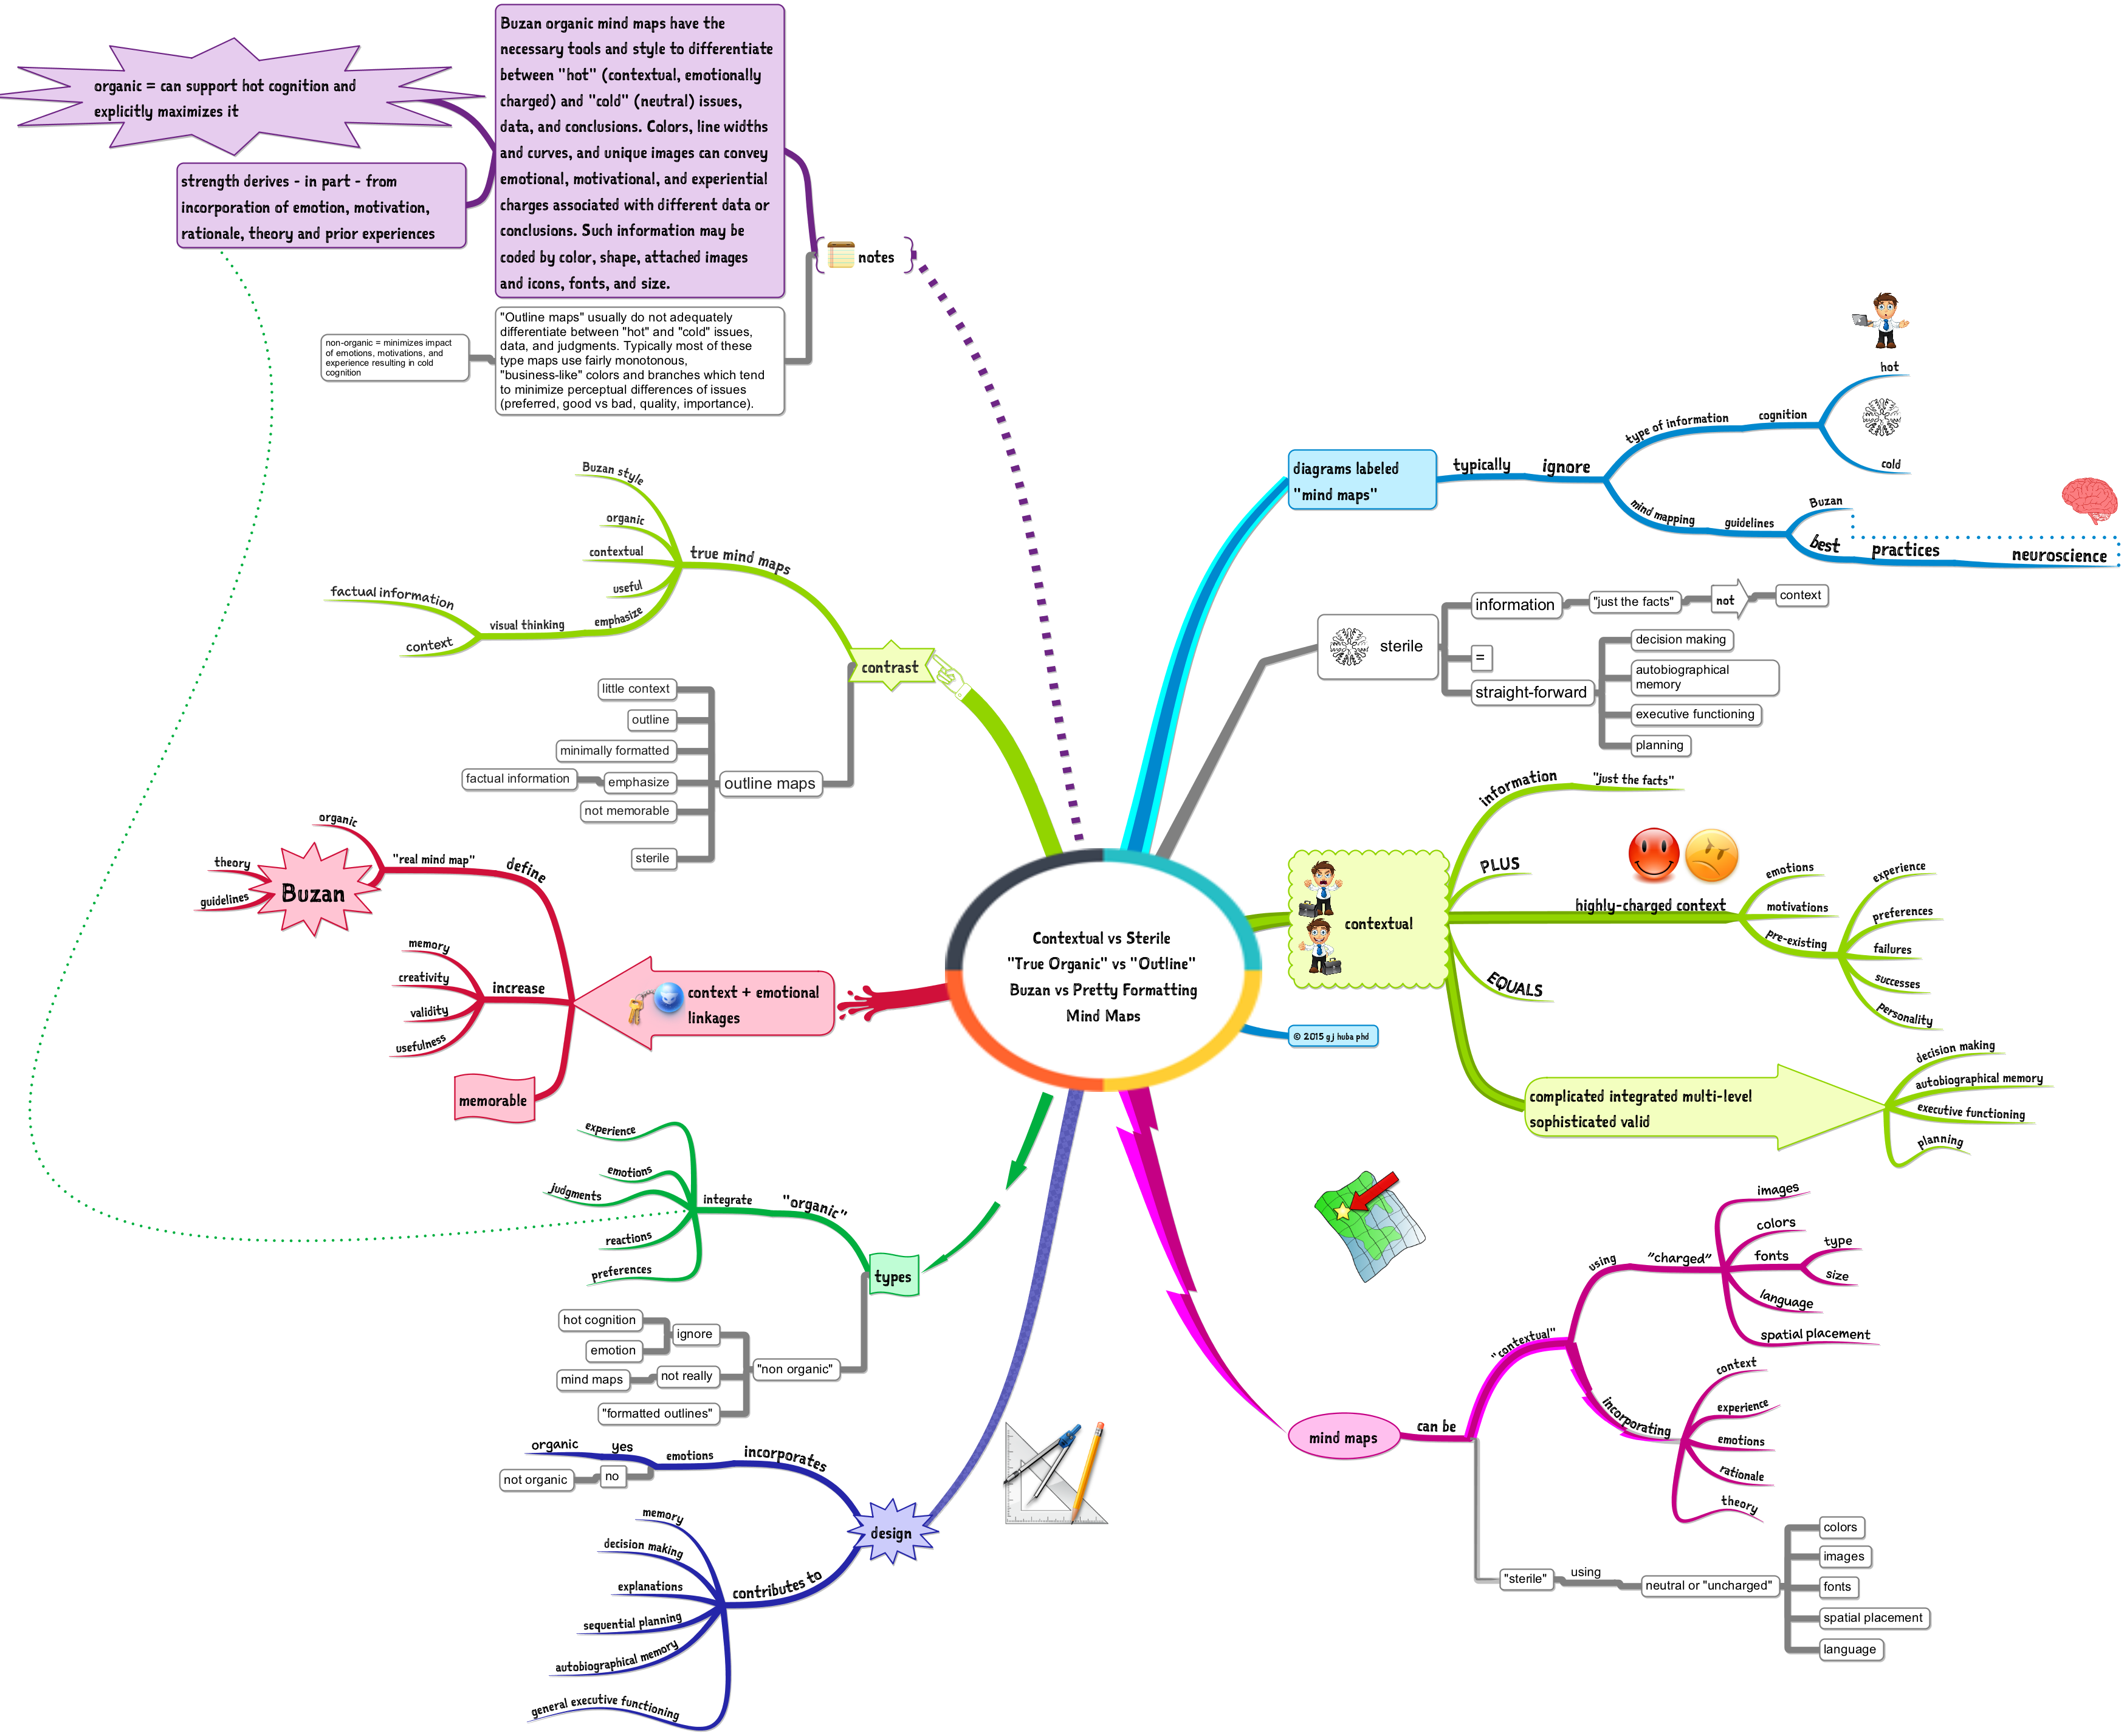 mind map of visual perception Framing experience: concept maps, mind maps, and data collection in qualitative research participant-centric visual representations of experience, maps offer a.